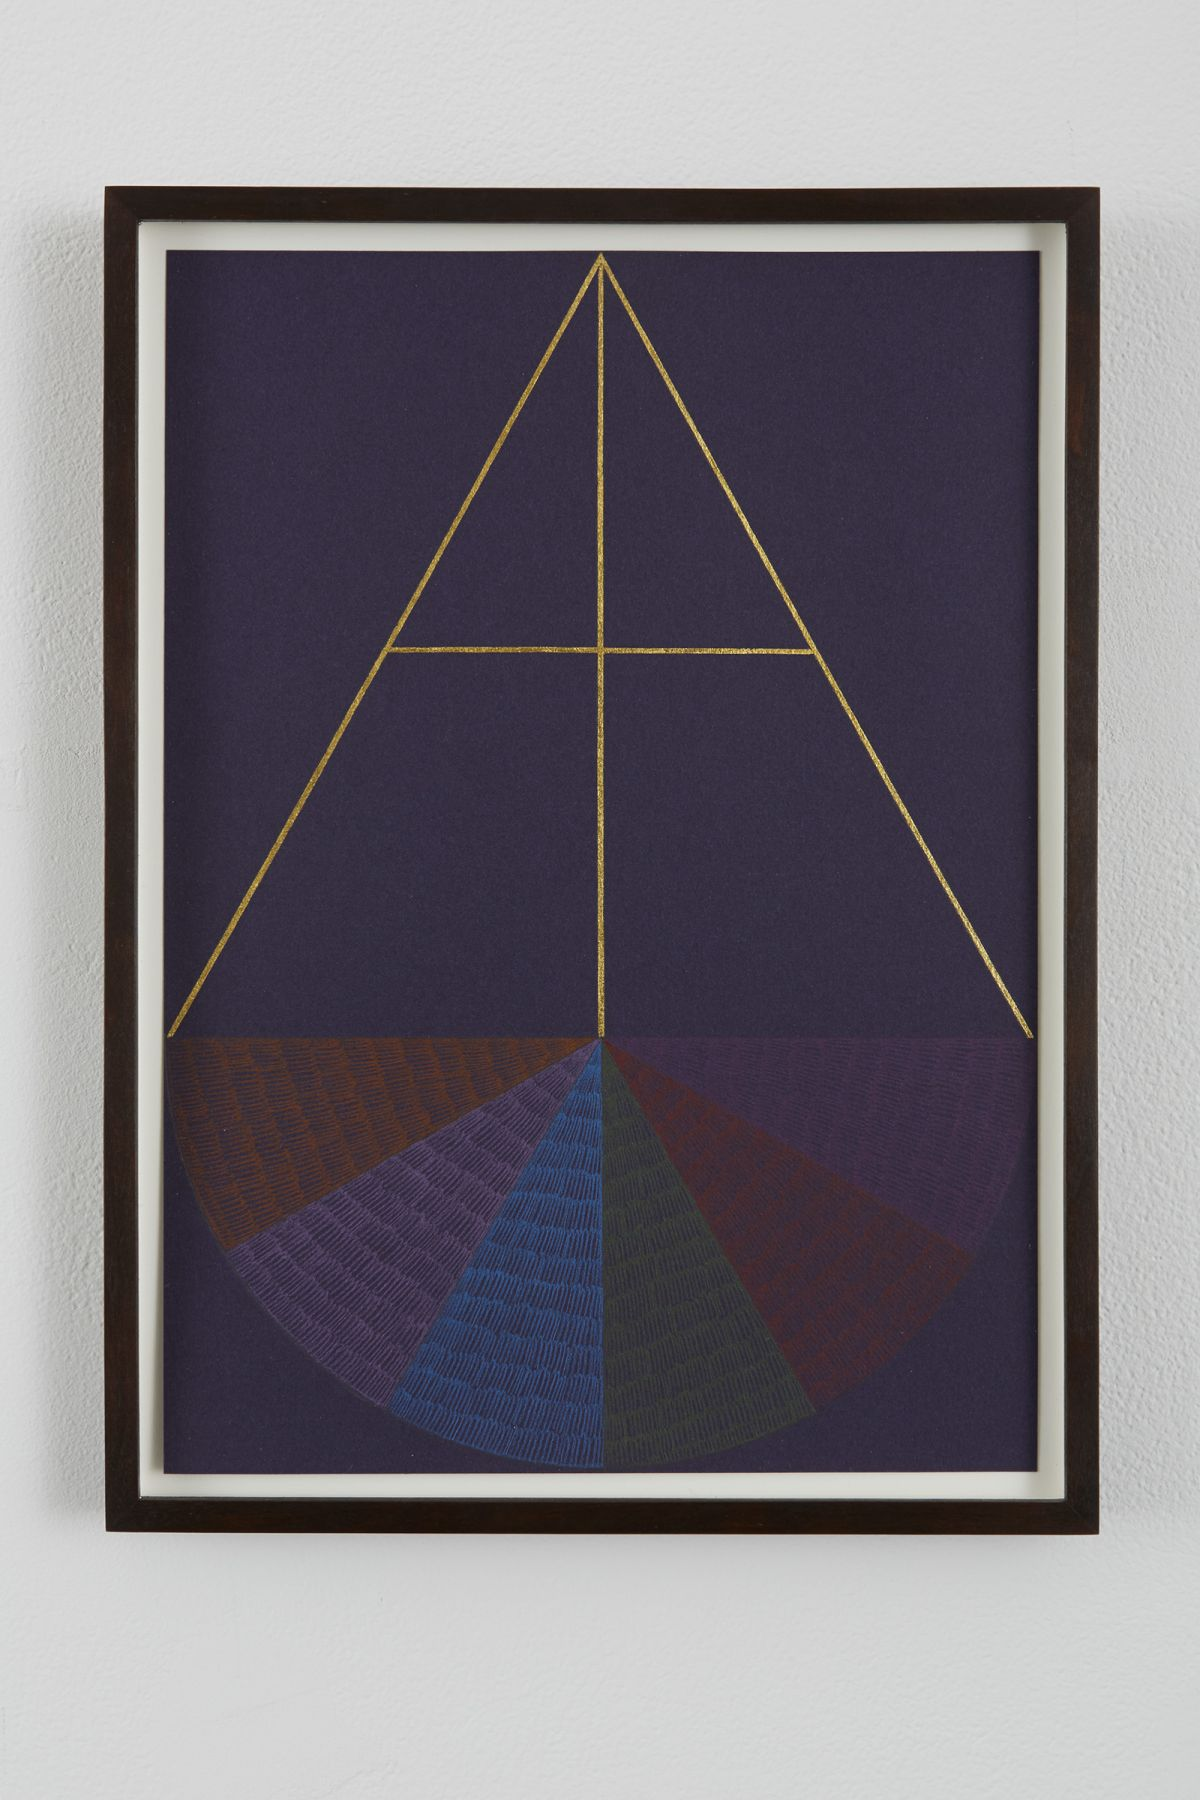 Untitled, 2013, Gold leaf, color pencil on paper